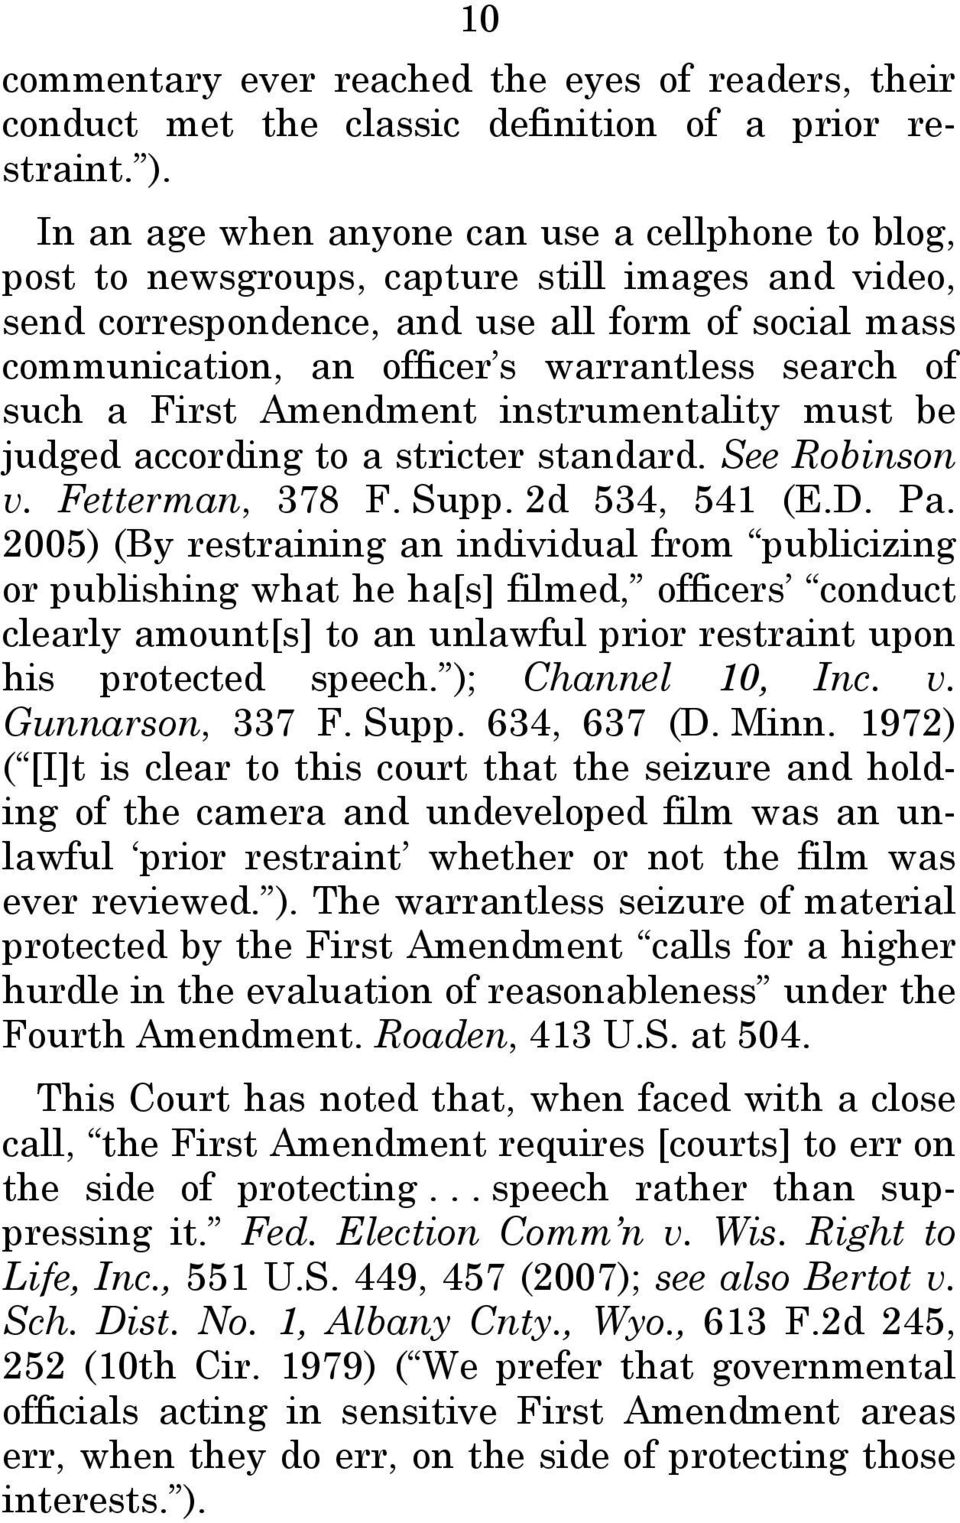 search of such a First Amendment instrumentality must be judged according to a stricter standard. See Robinson v. Fetterman, 378 F. Supp. 2d 534, 541 (E.D. Pa.